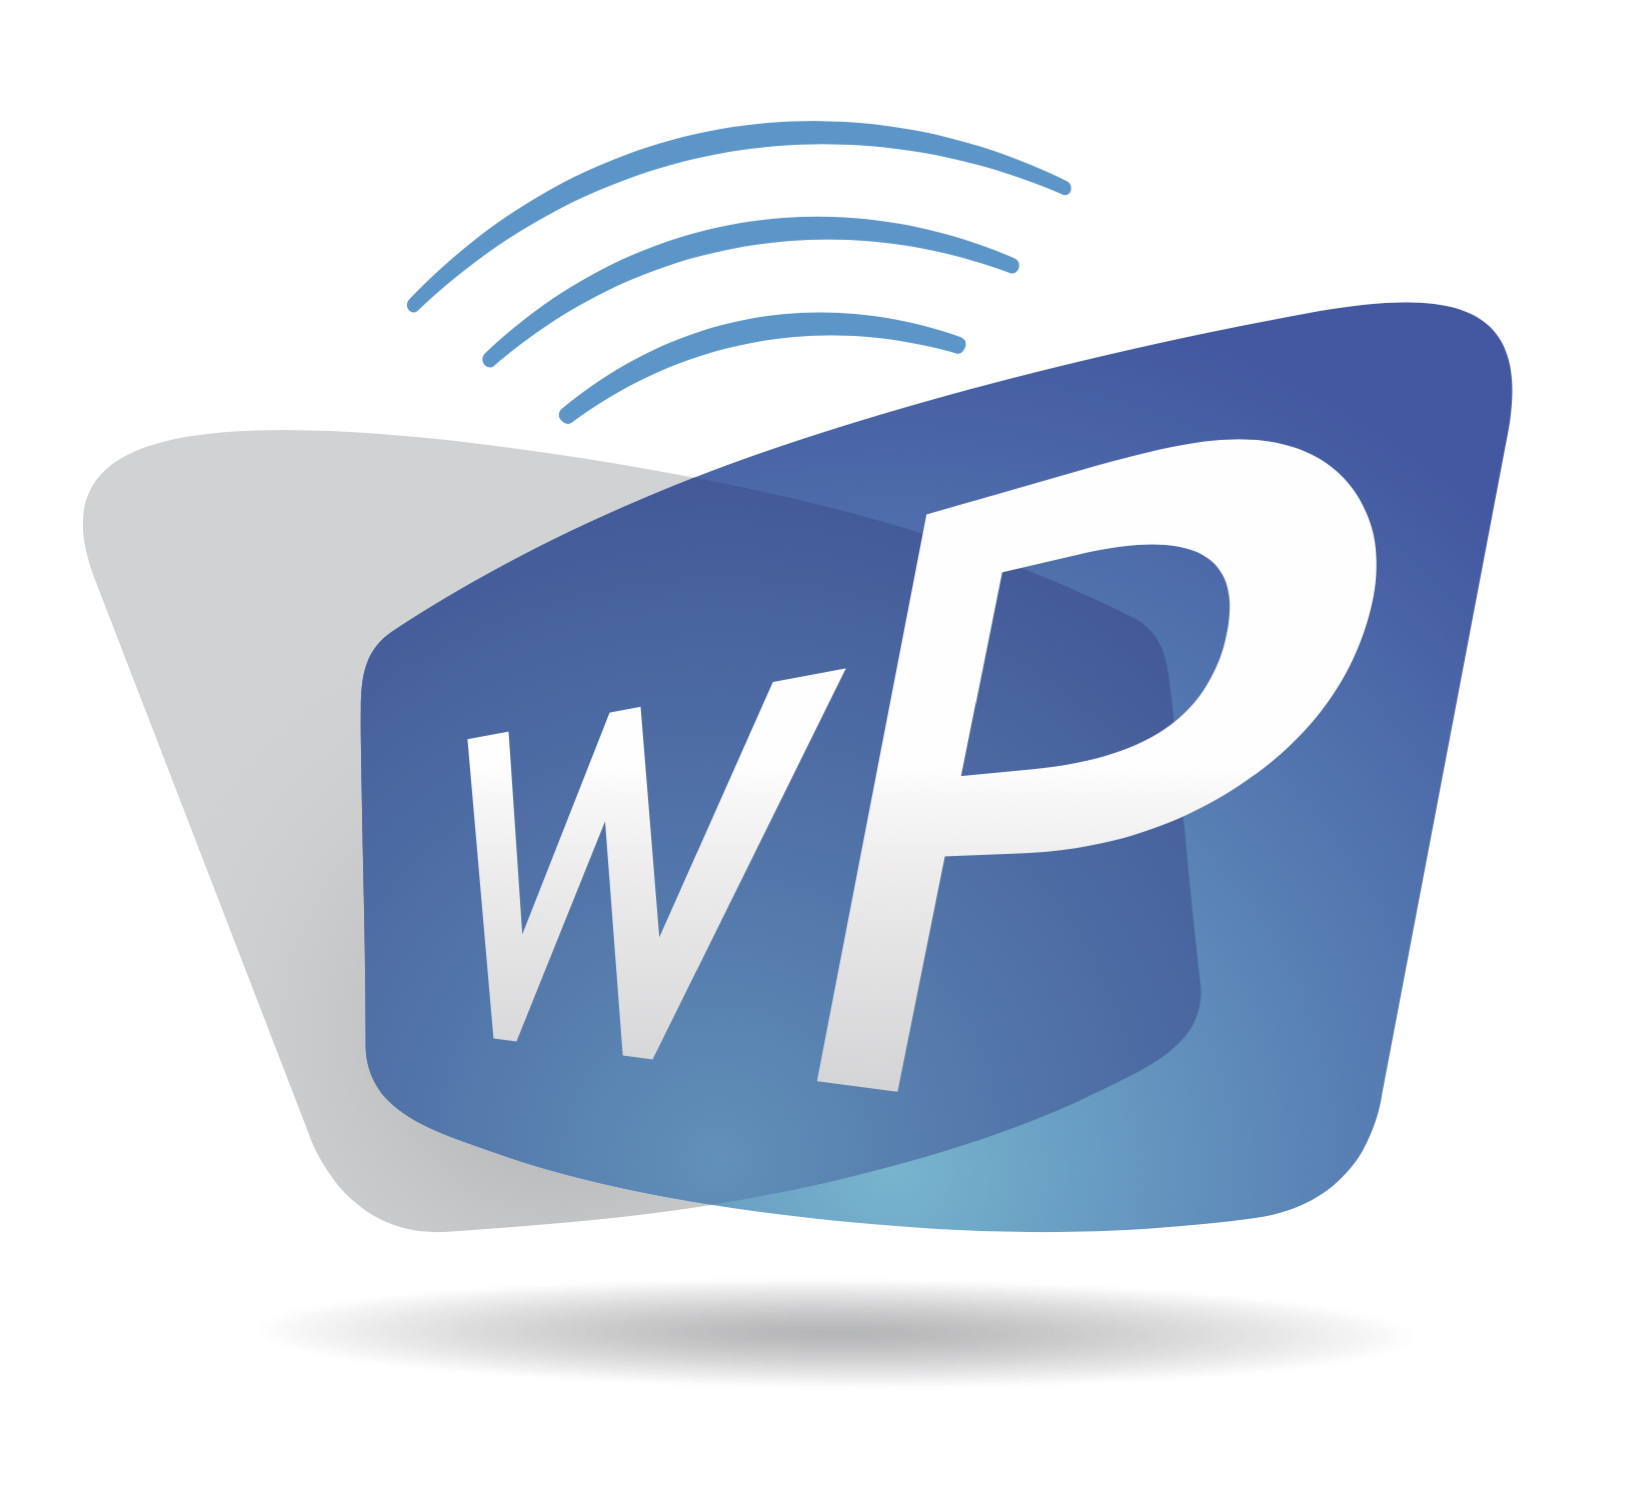 Wepresent Announces New Firmware Update To The Wipg 2000